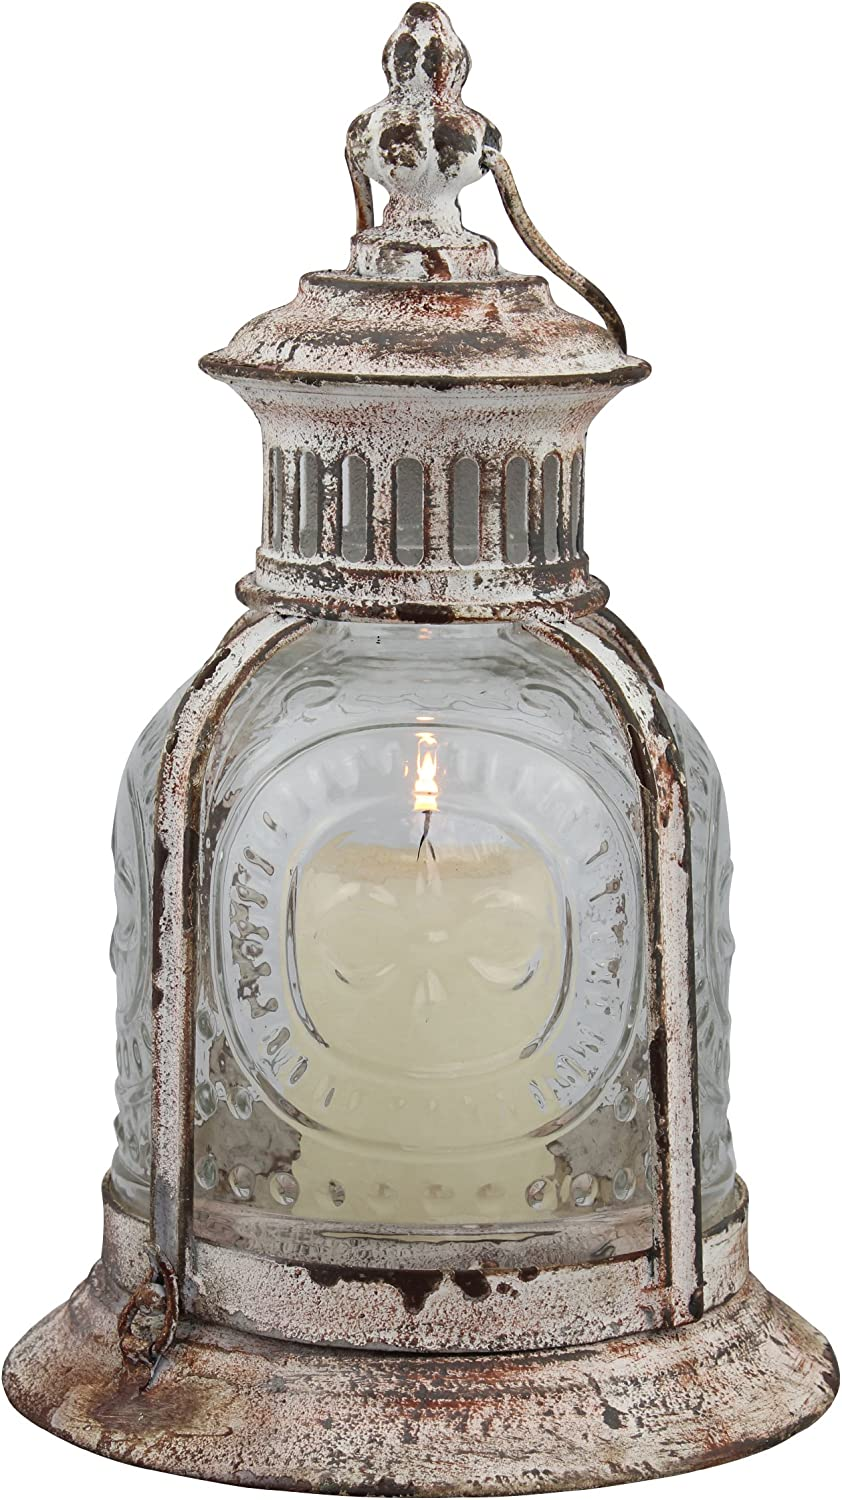 Stonebriar Antique White Metal Candle Lantern, Decoration for Birthday Parties, a Rustic Wedding Centerpiece, or Create a Relaxing Spa Setting, for Indoor or Outdoor Use: Home & Kitchen